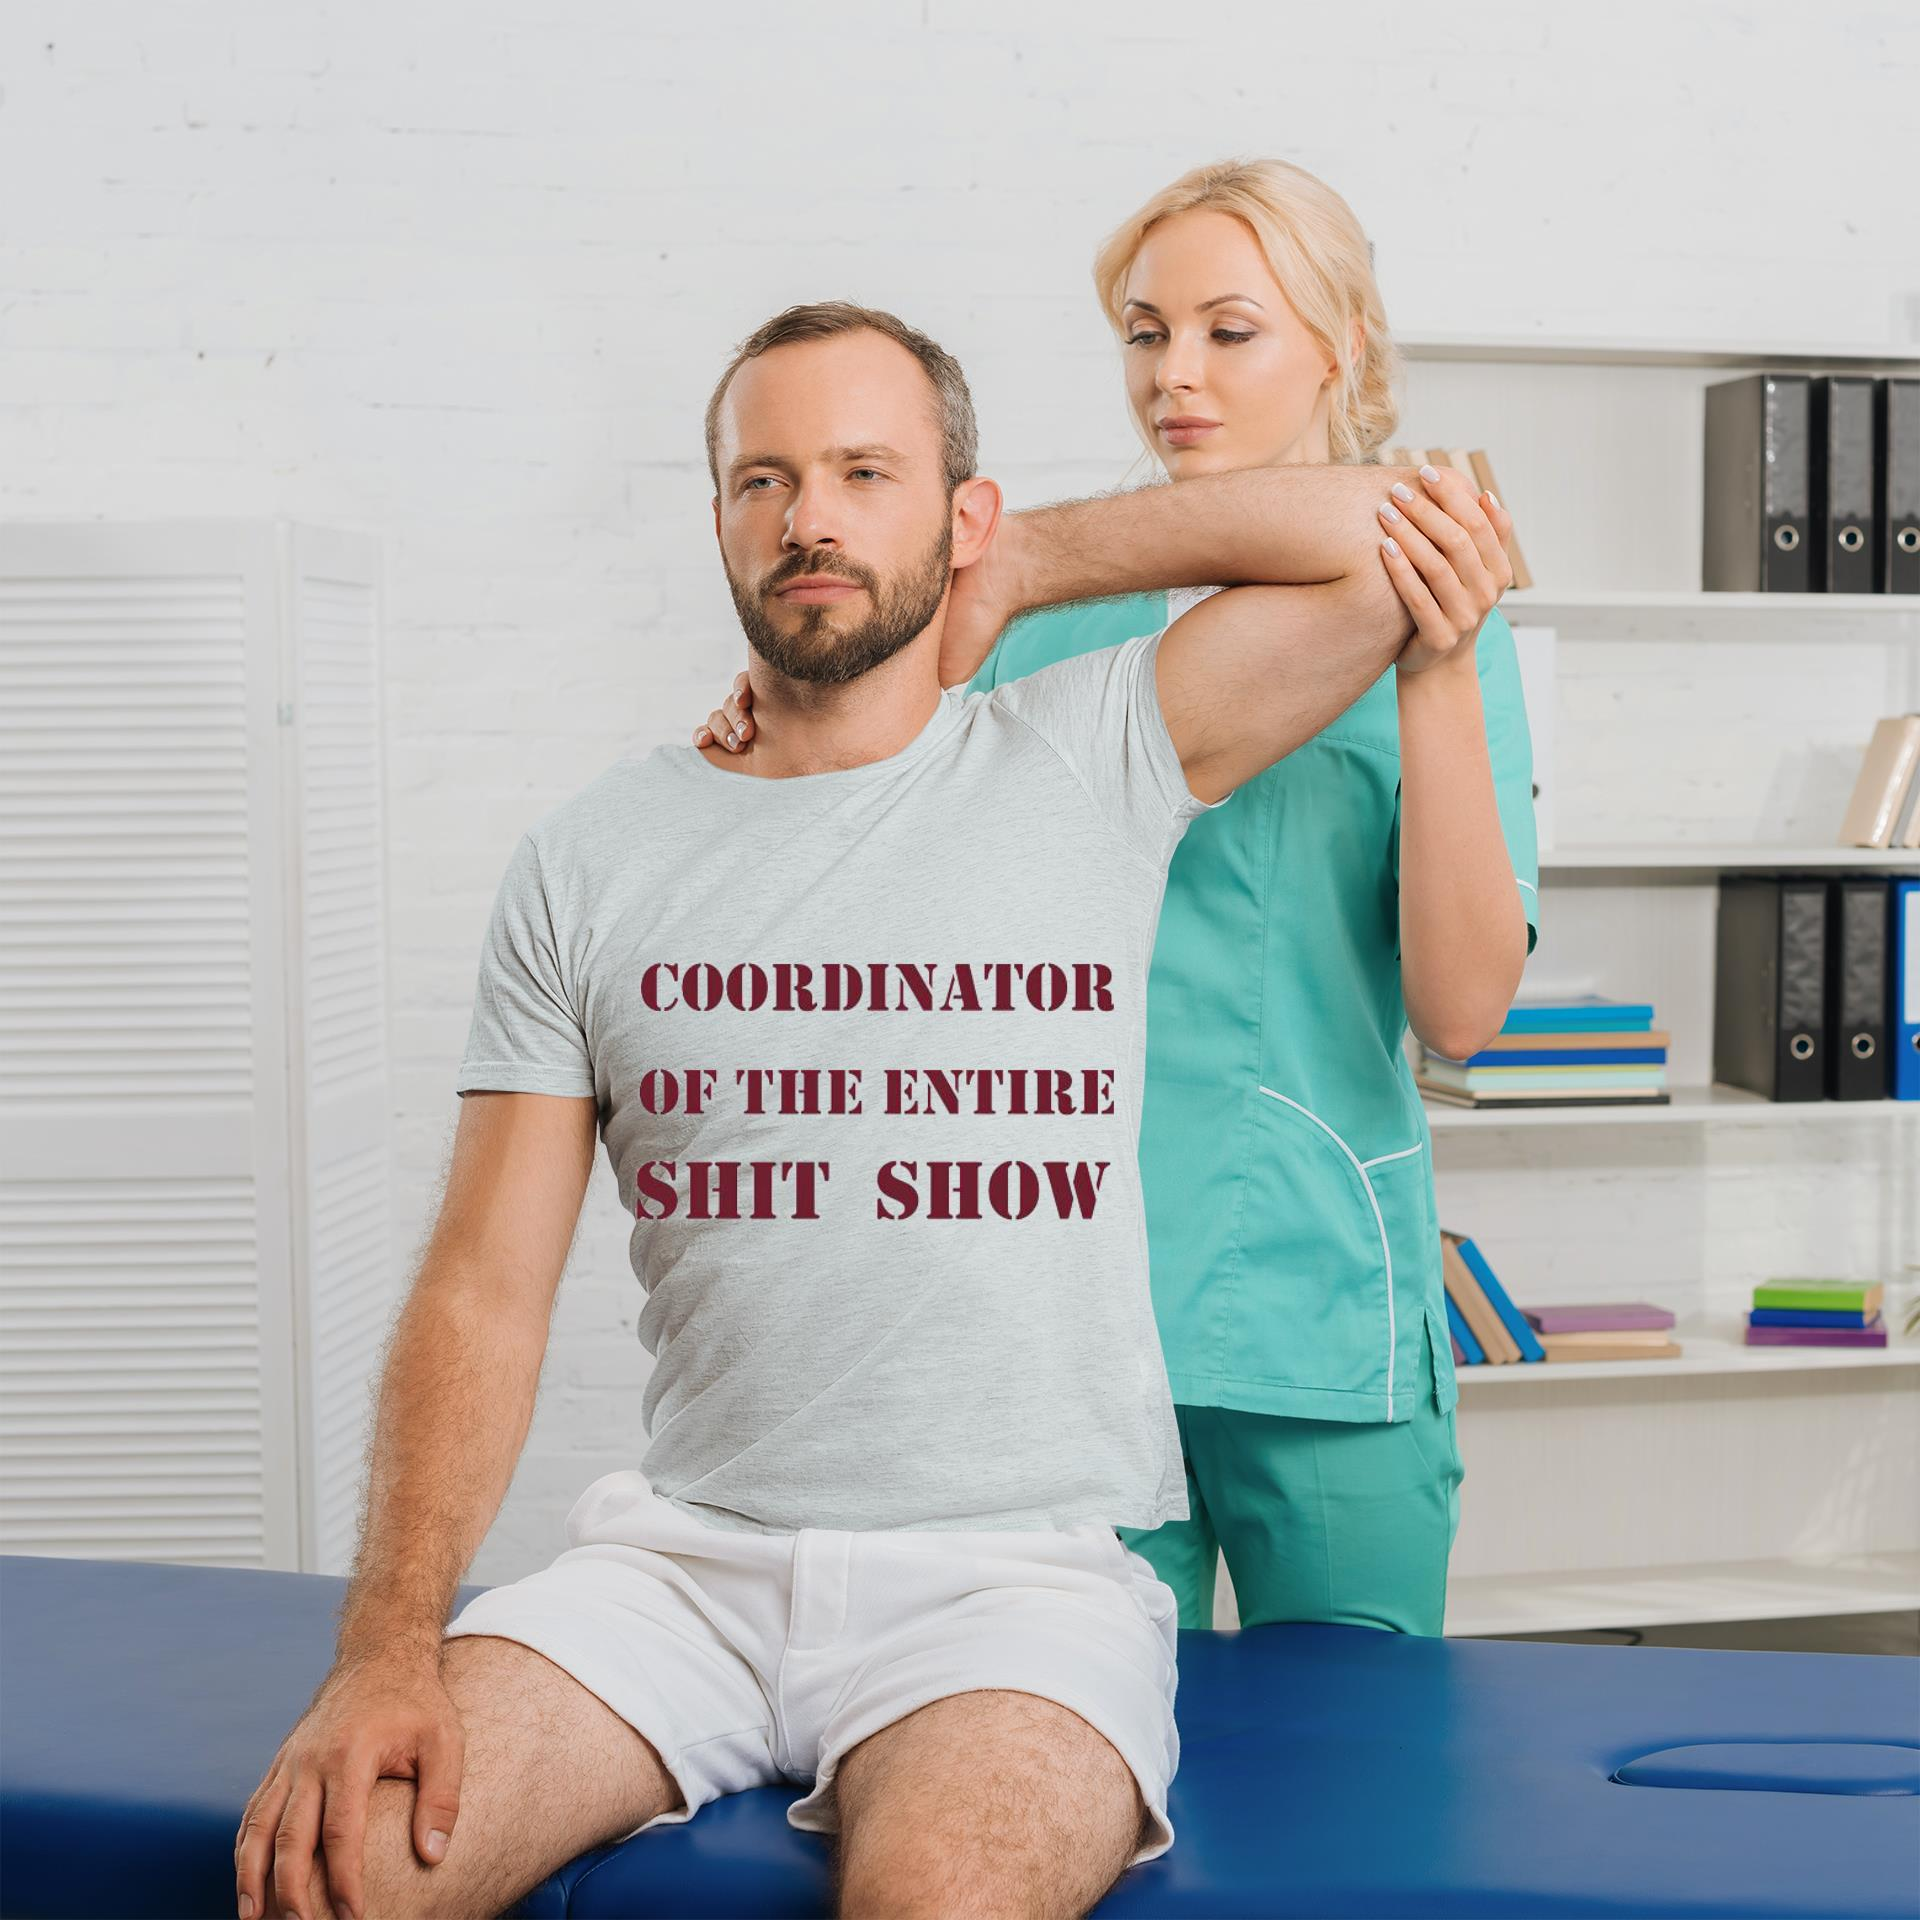 The Coordinator of the entire shit show shirt